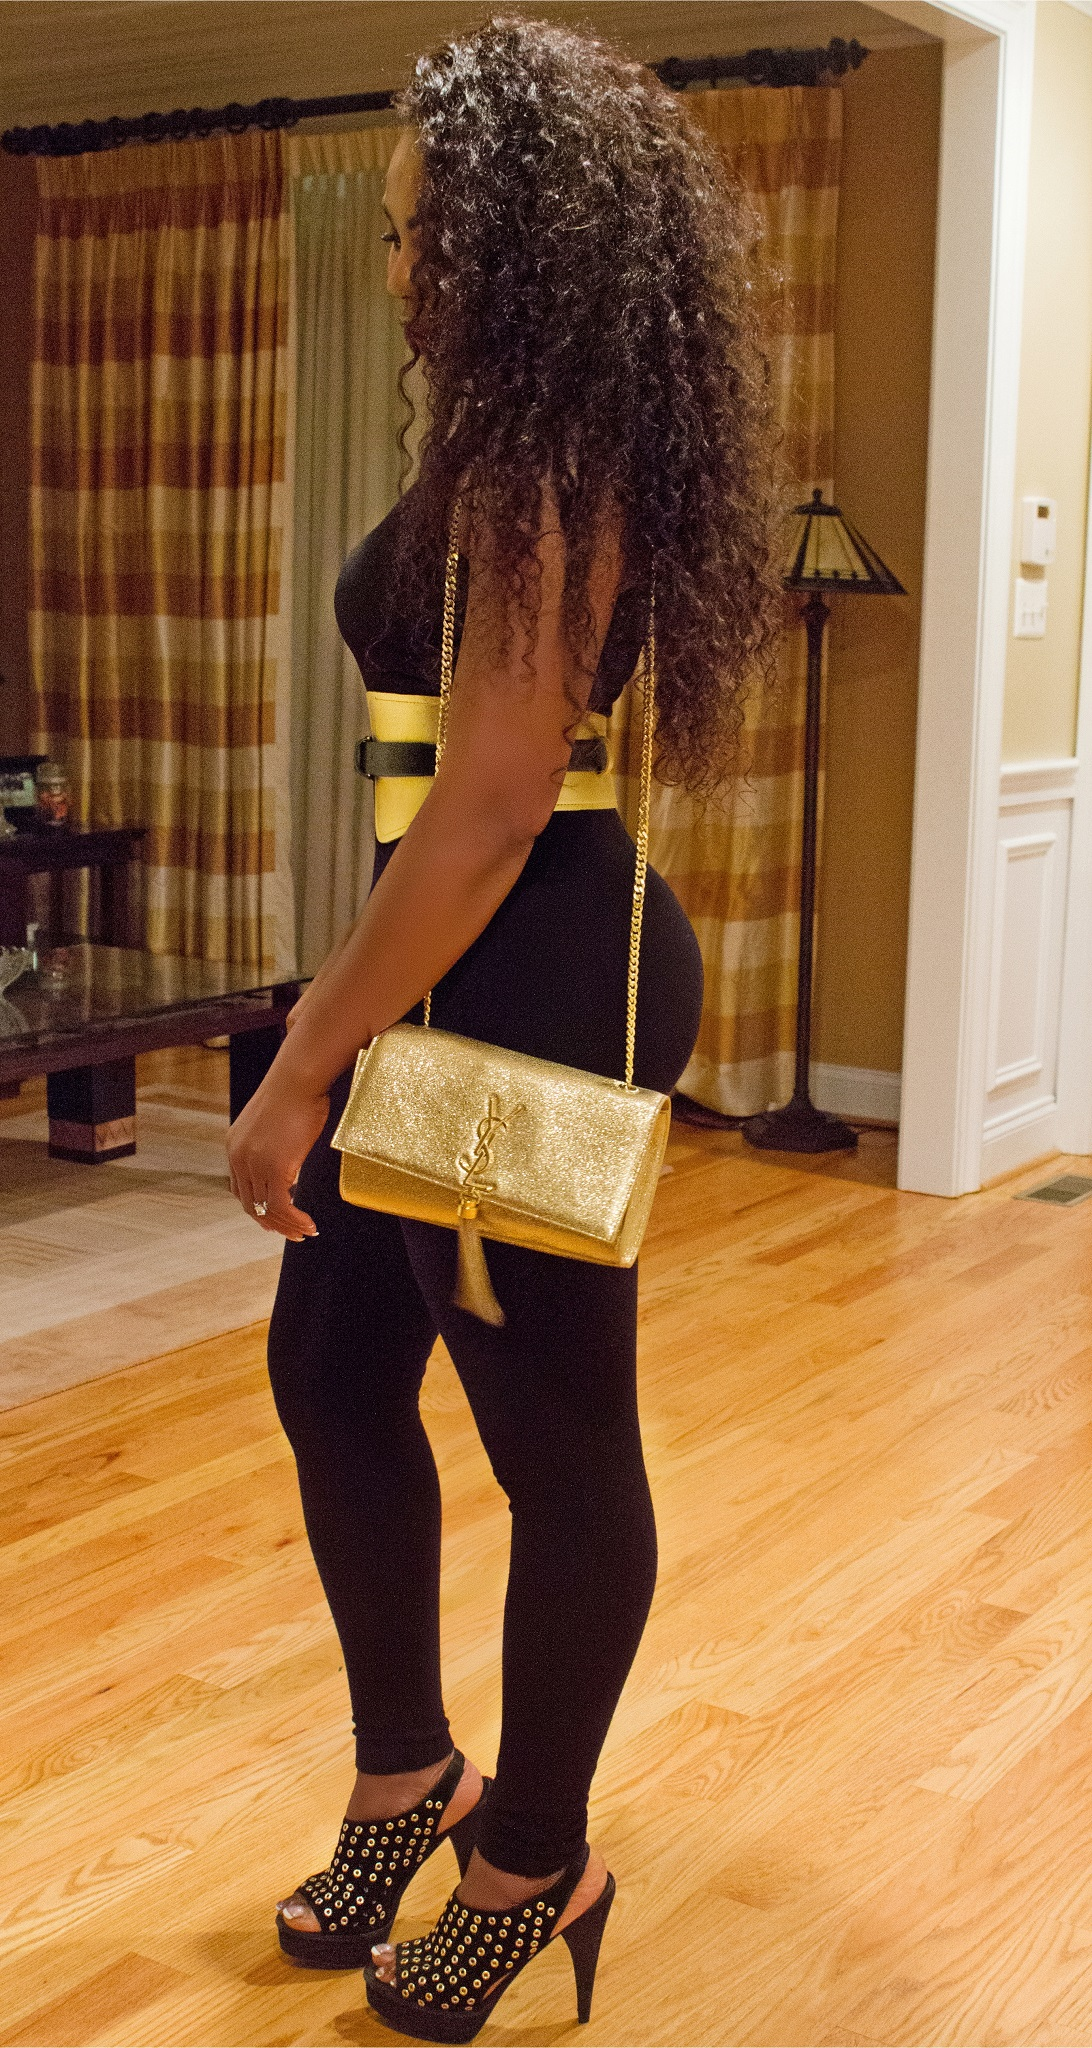 Thelma Okoro wearing Yves Saint Laurent Gold Clutch and Belt side view